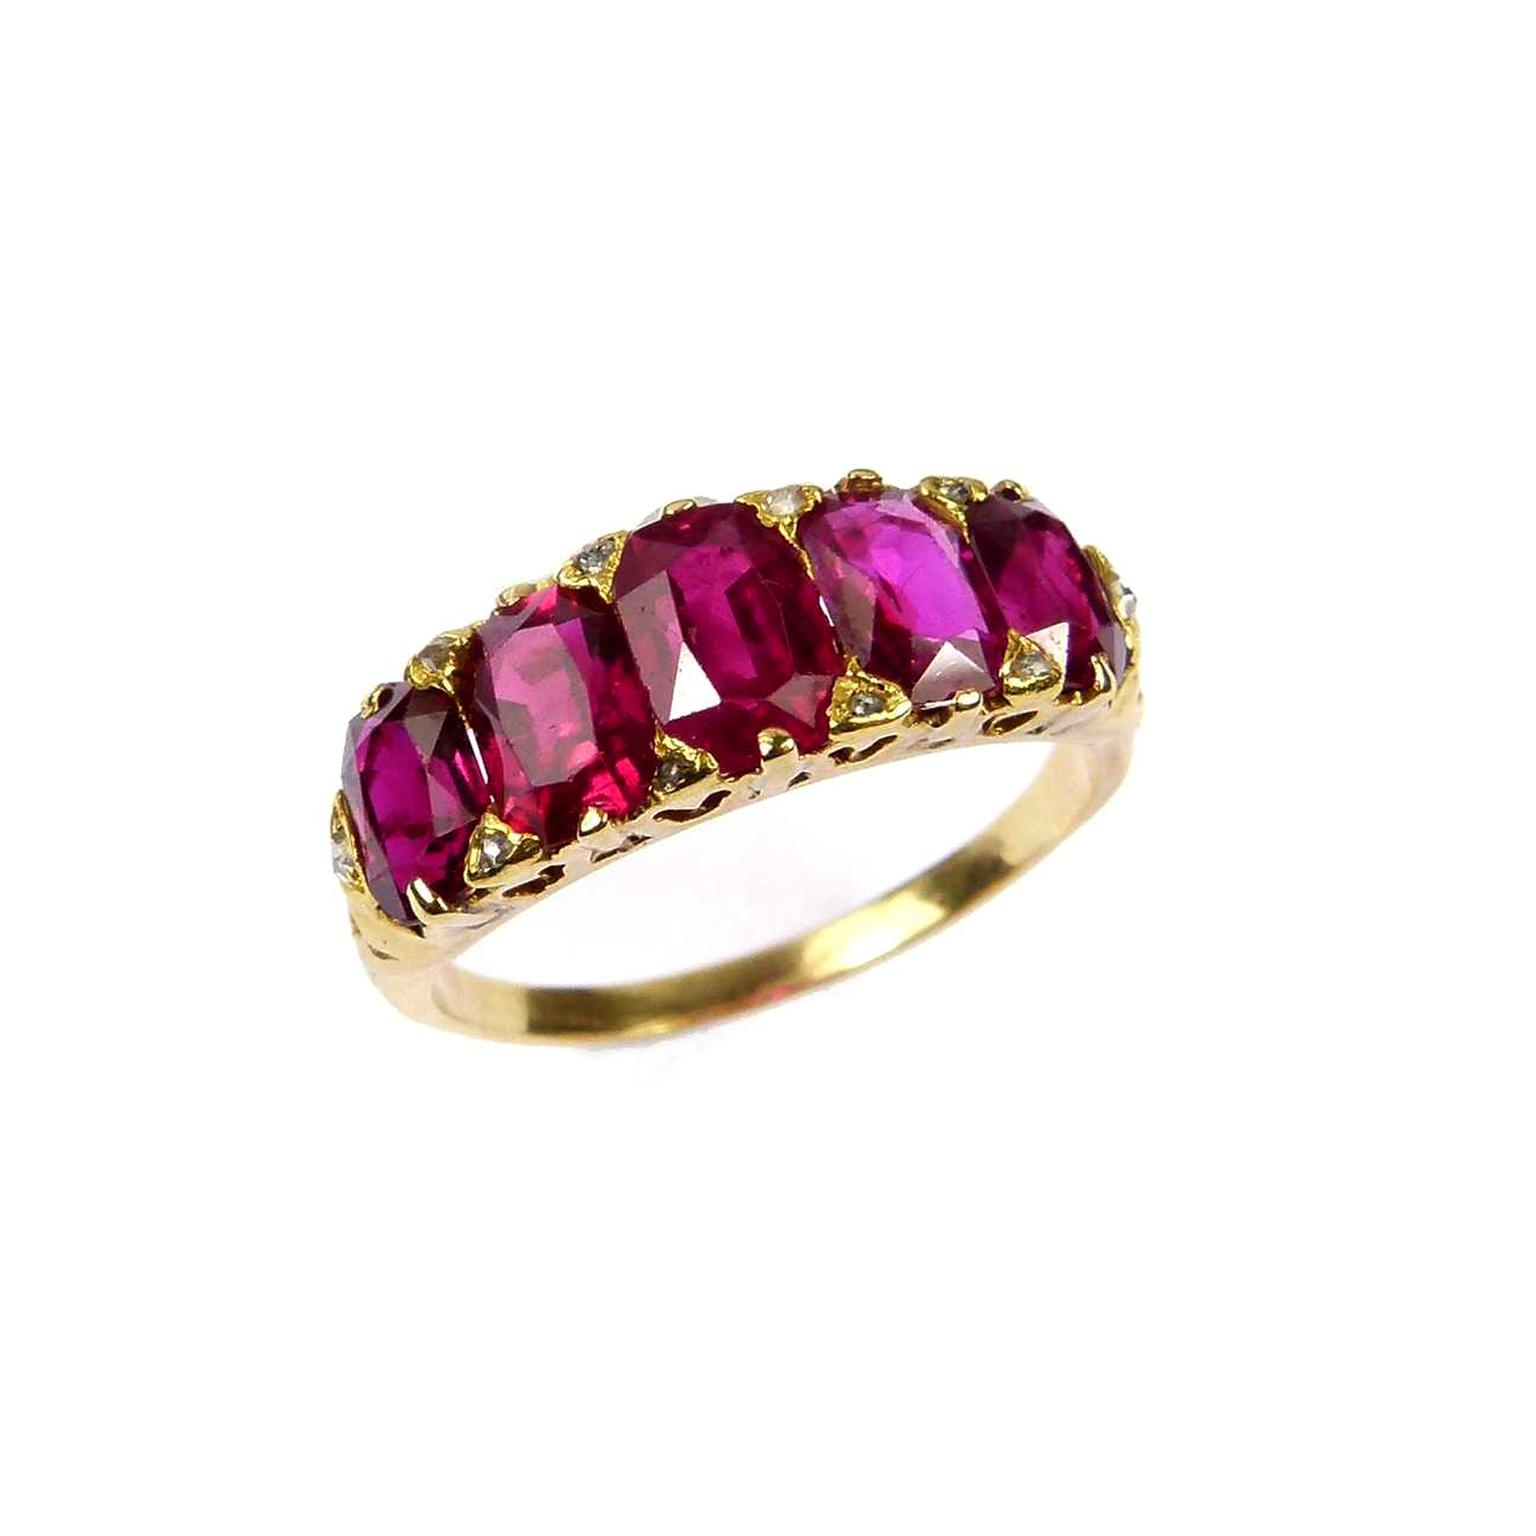 SJ Phillips five-stone Victorian ruby ring